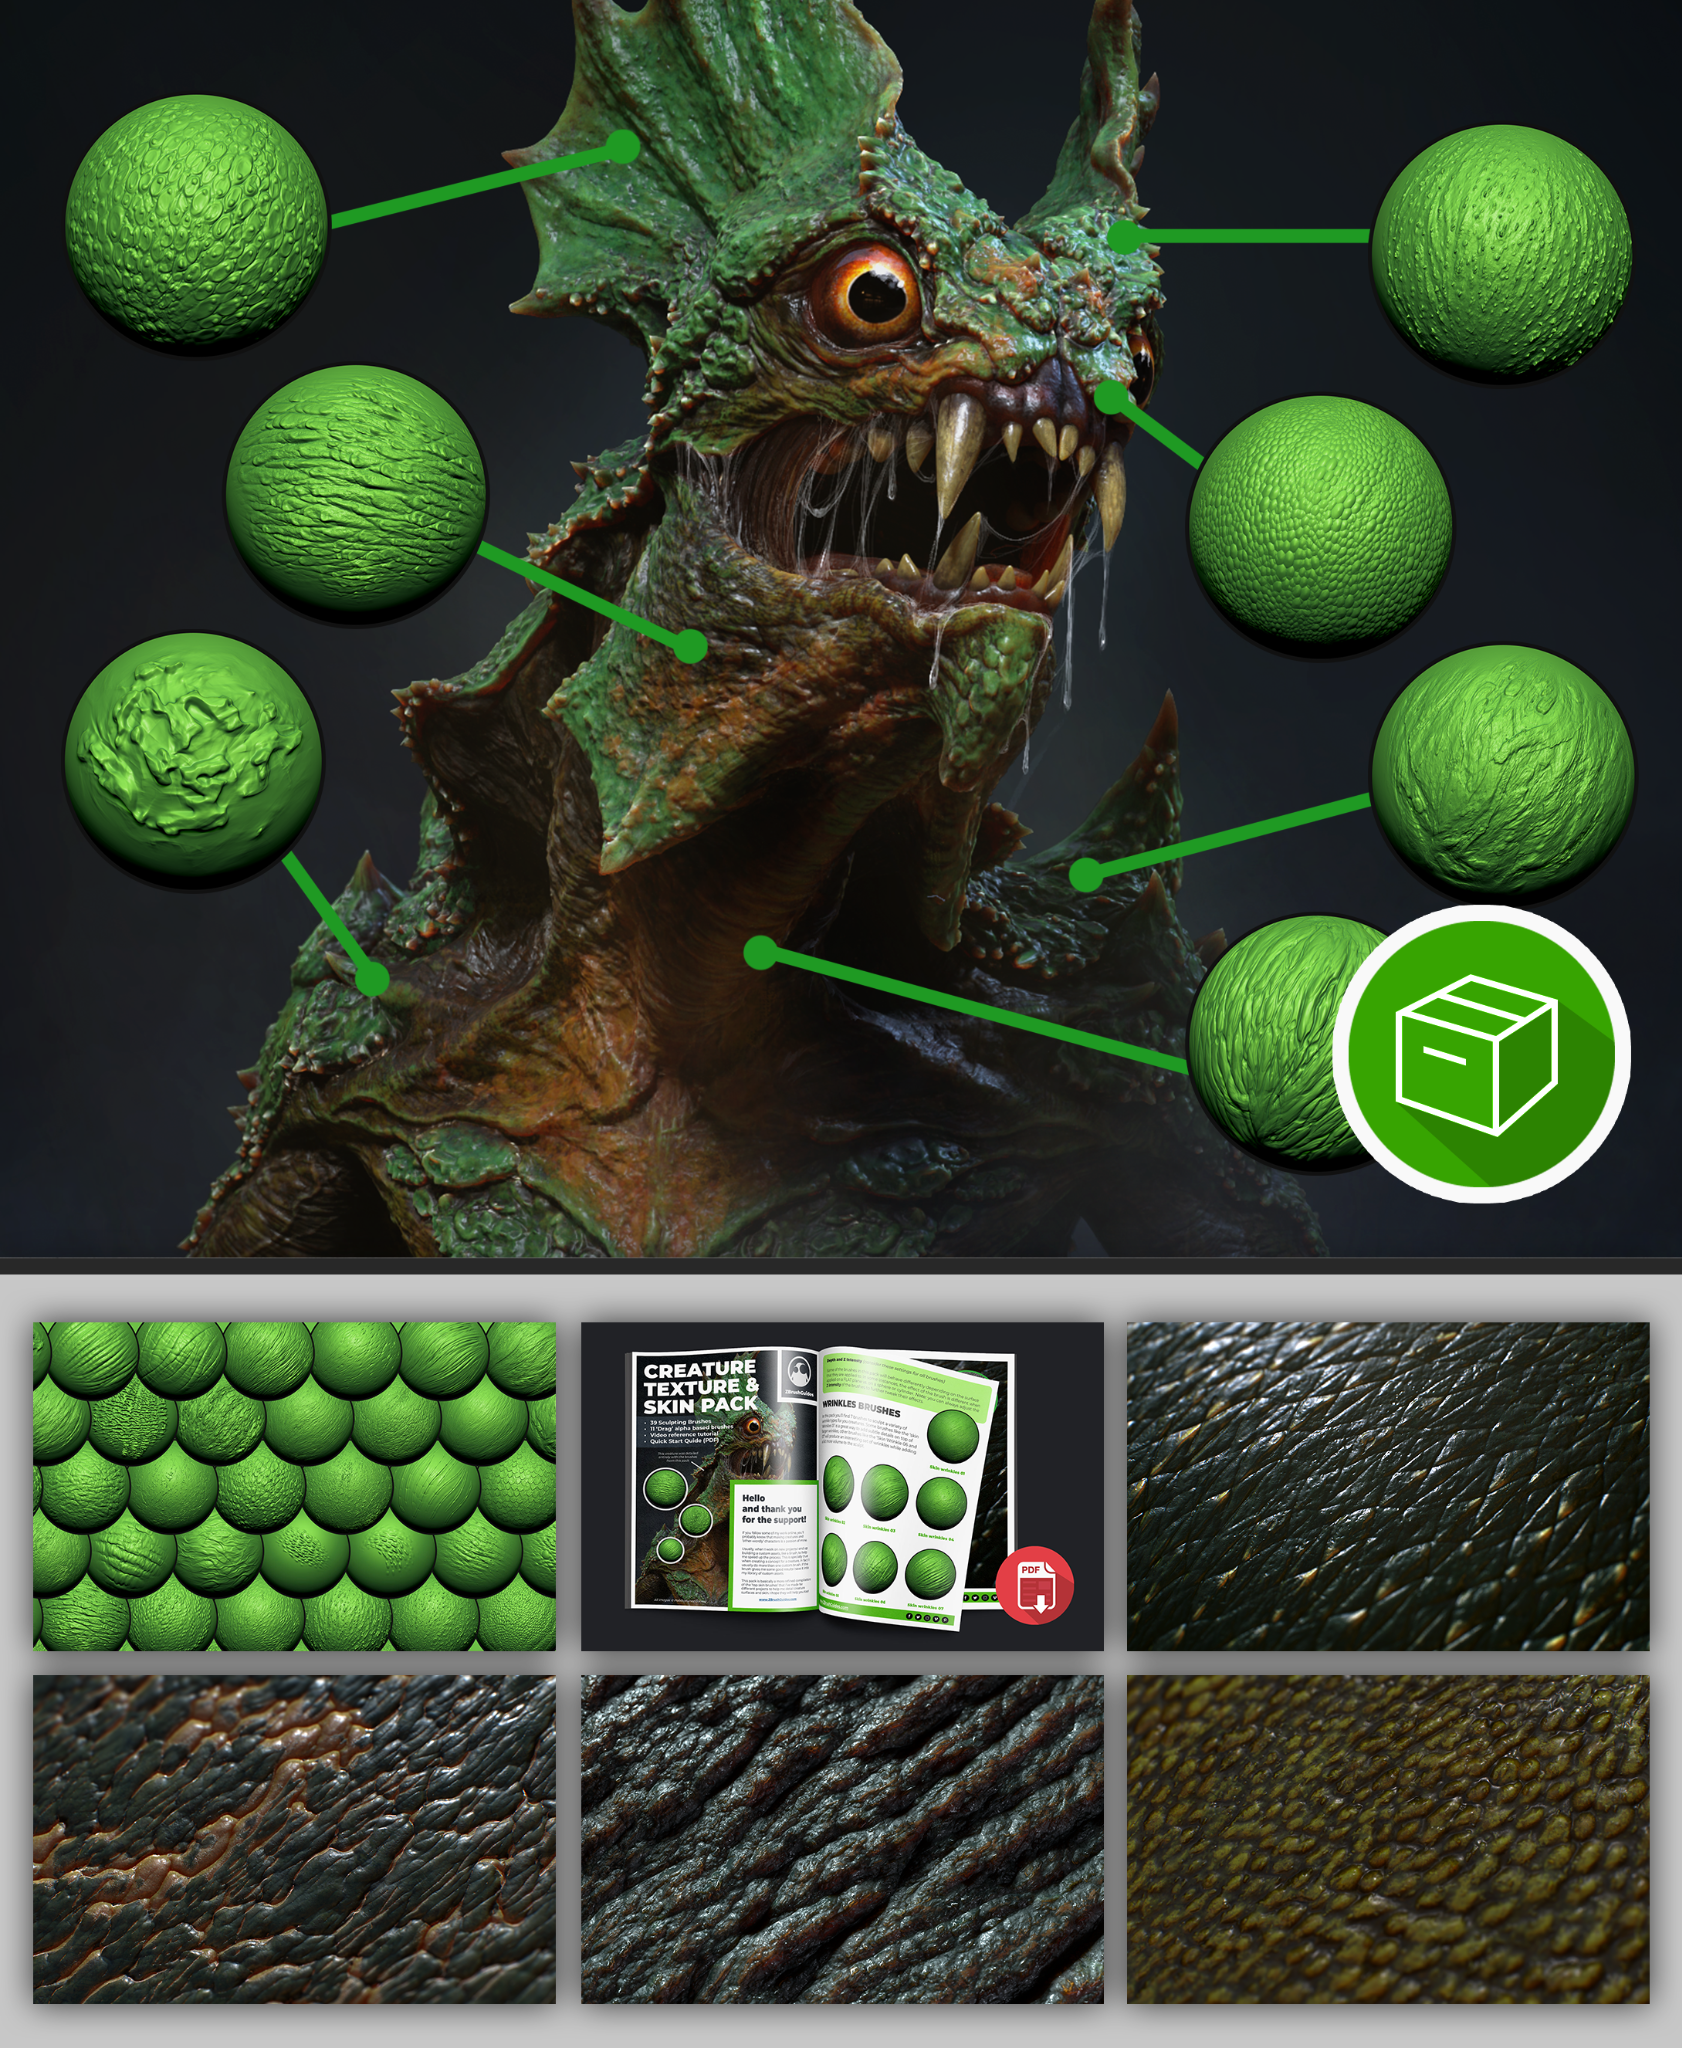 Creature texture and skin brushes pack